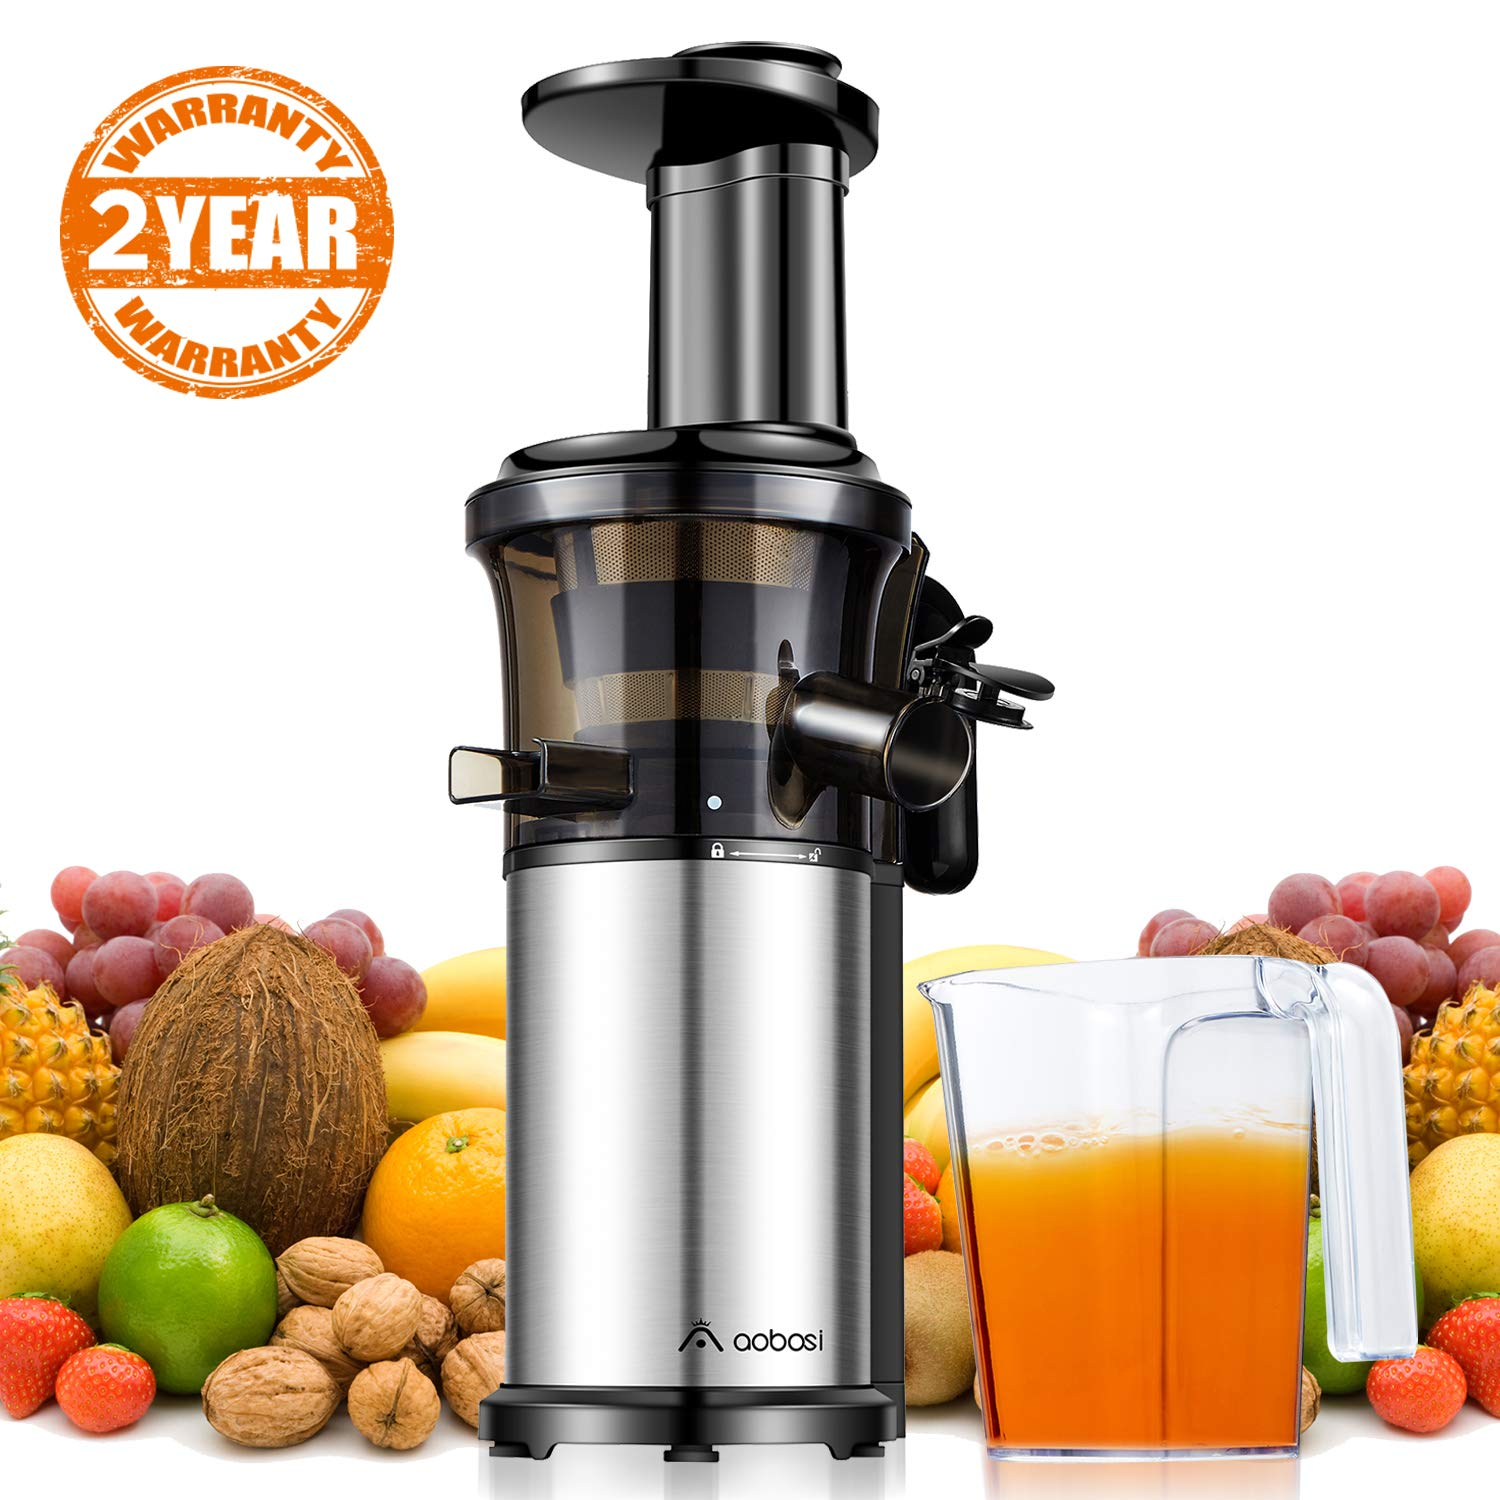 Aobosi Slow Masticating Juicer 83mm(3.15inch) Wide Chute Juice Extractor Cold Press Juicer Machine